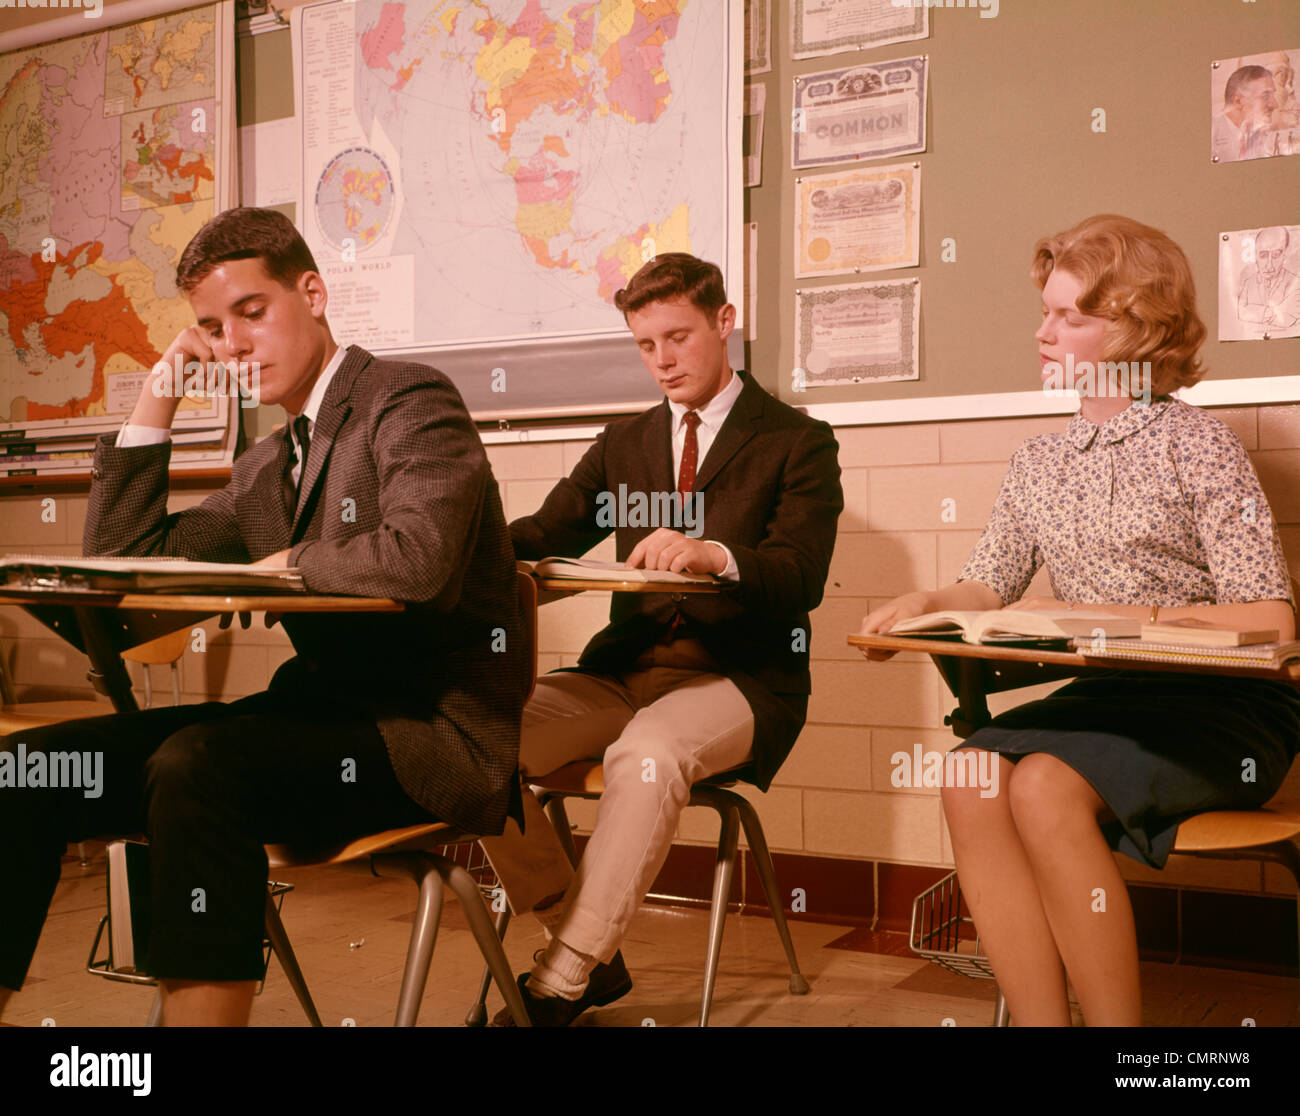 Schools Education6 25 18students: 1960 1960s 3 COLLEGE HIGH SCHOOL STUDENT STUDENTS SITTING